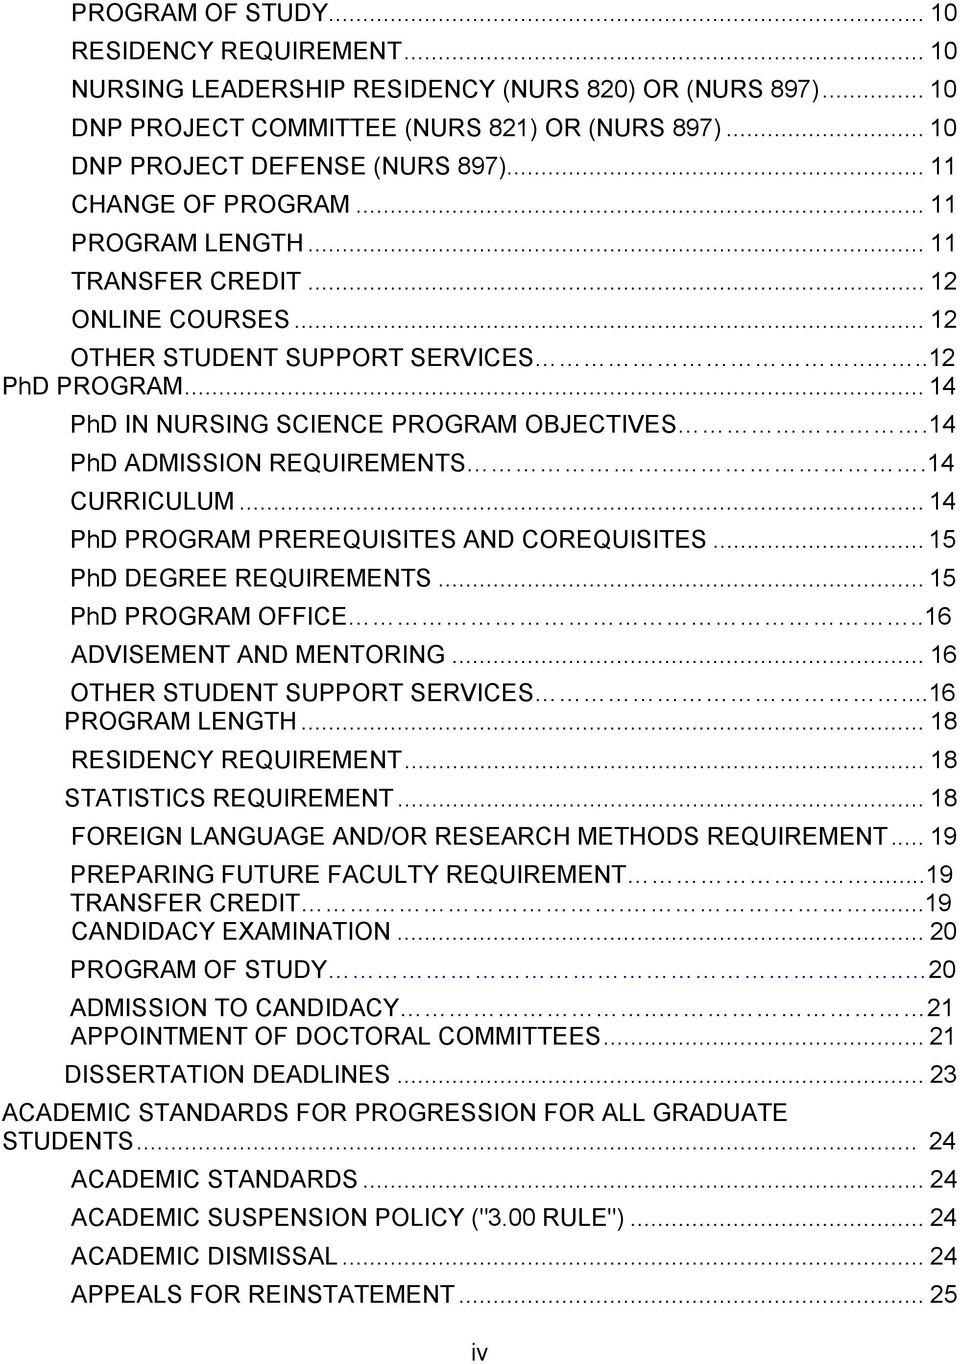 14 PhD ADMISSION REQUIREMENTS...14 CURRICULUM... 14 PhD PROGRAM PREREQUISITES AND COREQUISITES... 15 PhD DEGREE REQUIREMENTS... 15 PhD PROGRAM OFFICE..16 ADVISEMENT AND MENTORING.